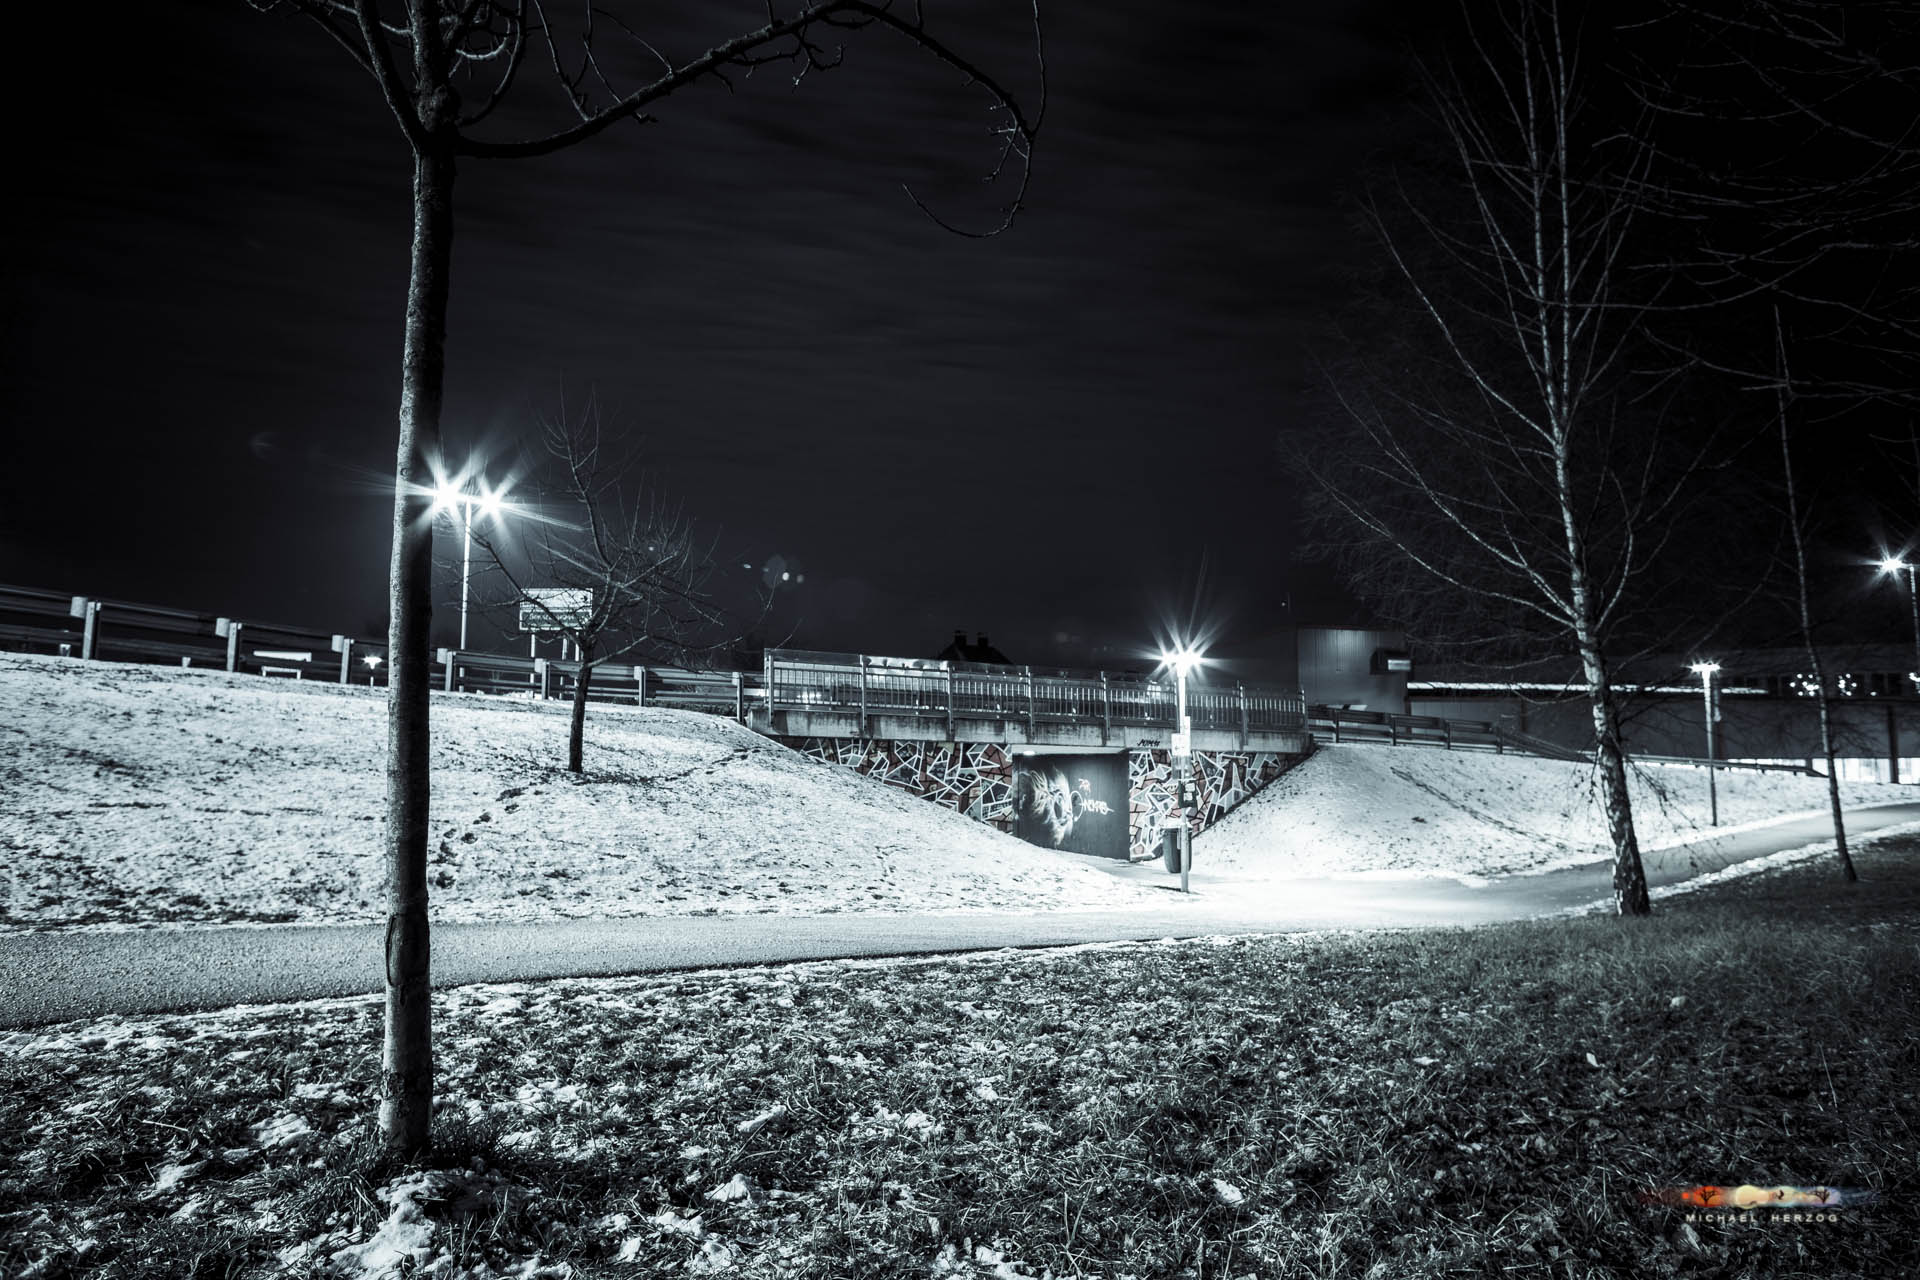 Lamprechtshausen_urban_Night_MichaelHerzog-2425.jpg